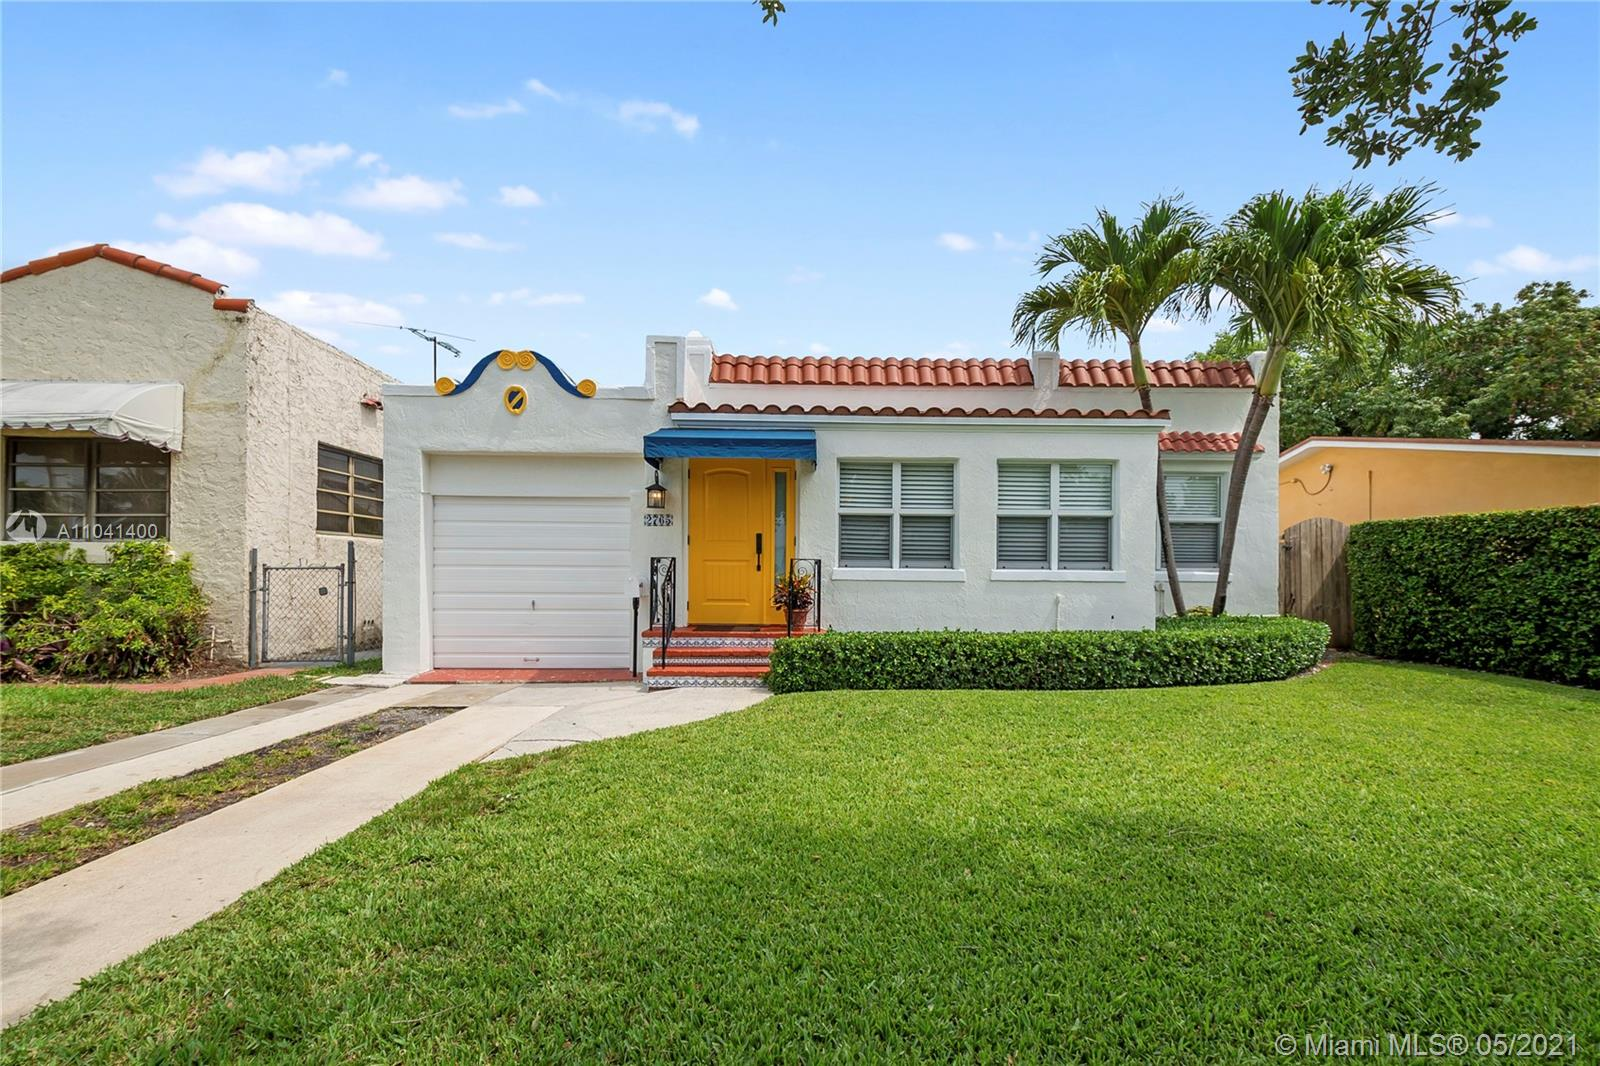 Details for 2765 14th St, Miami, FL 33145